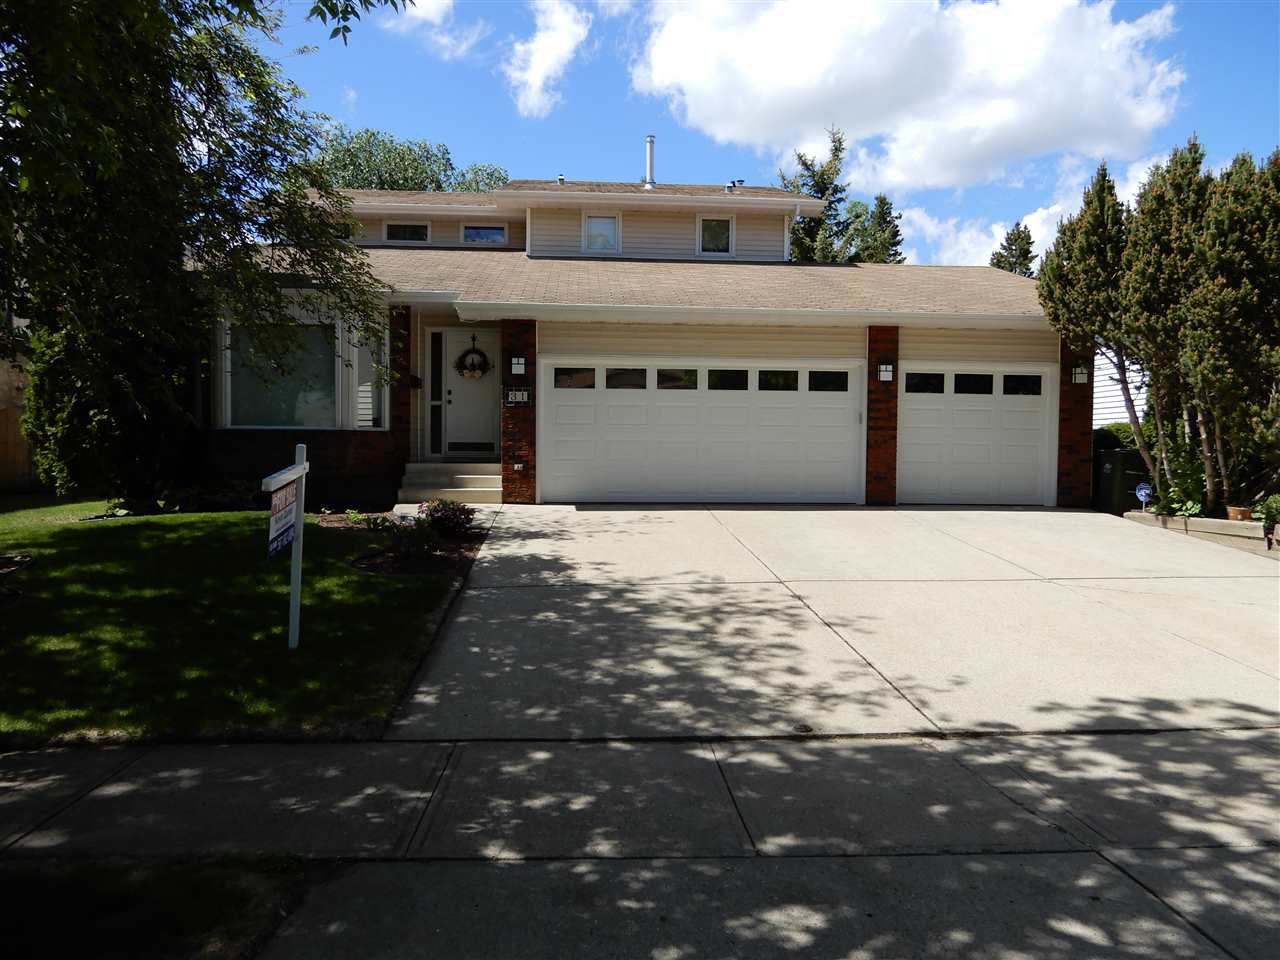 Main Photo: 31 LOMBARD Crescent: St. Albert House for sale : MLS®# E4185725